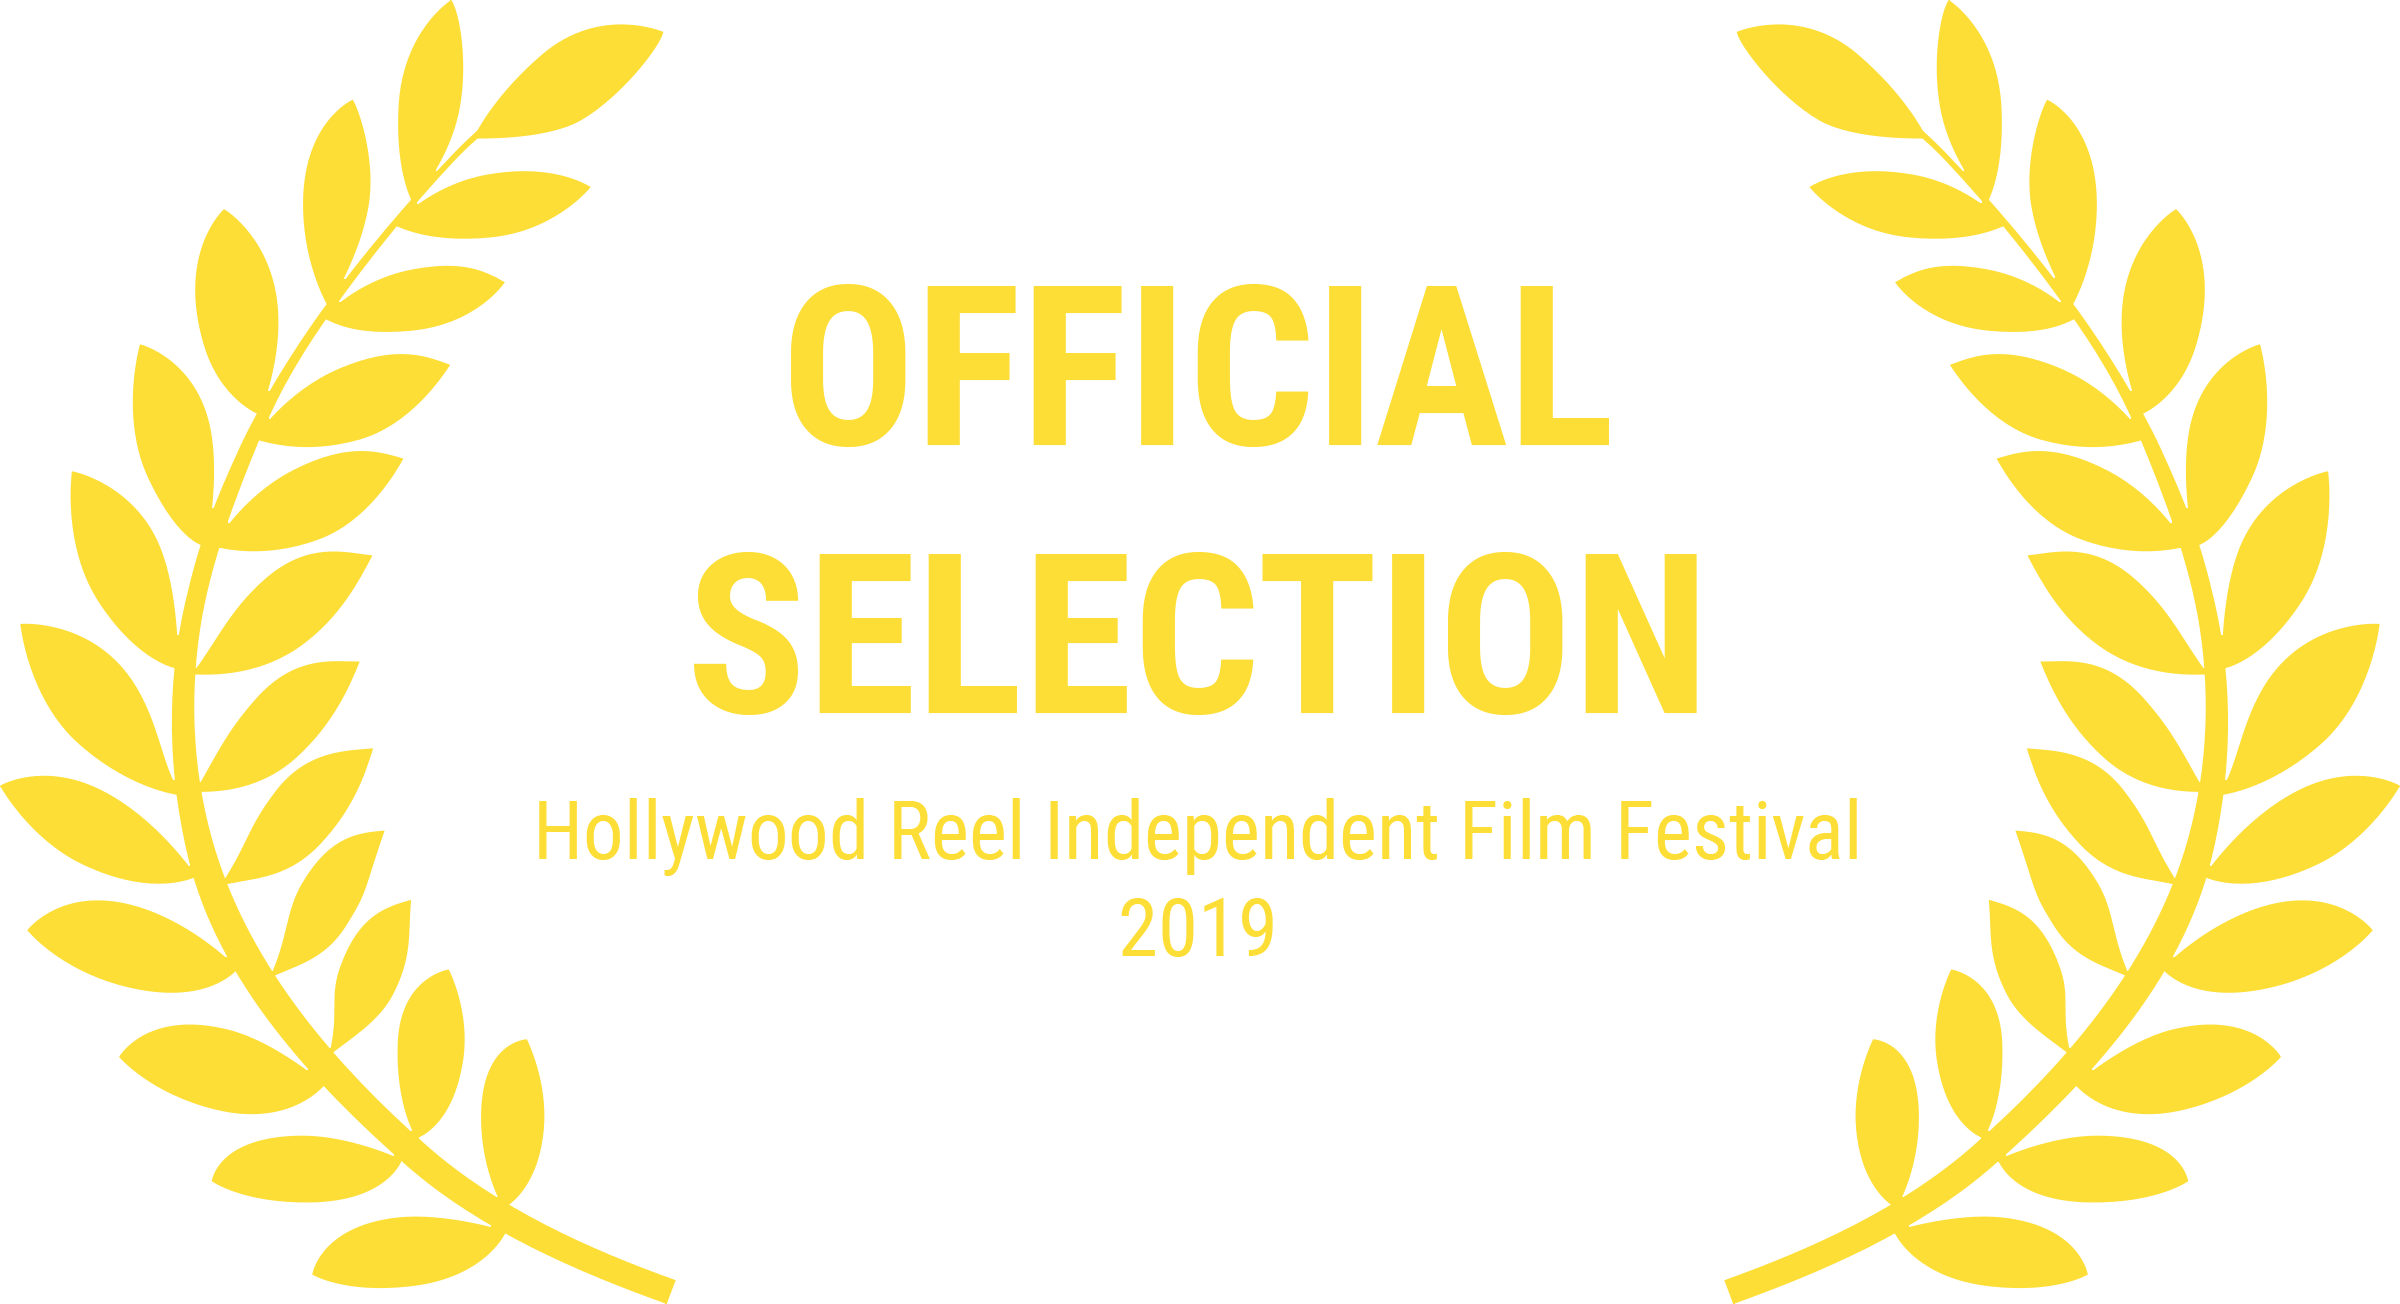 Low Low - Official Selection - Hollywood Reel Independent Film Festival 2019